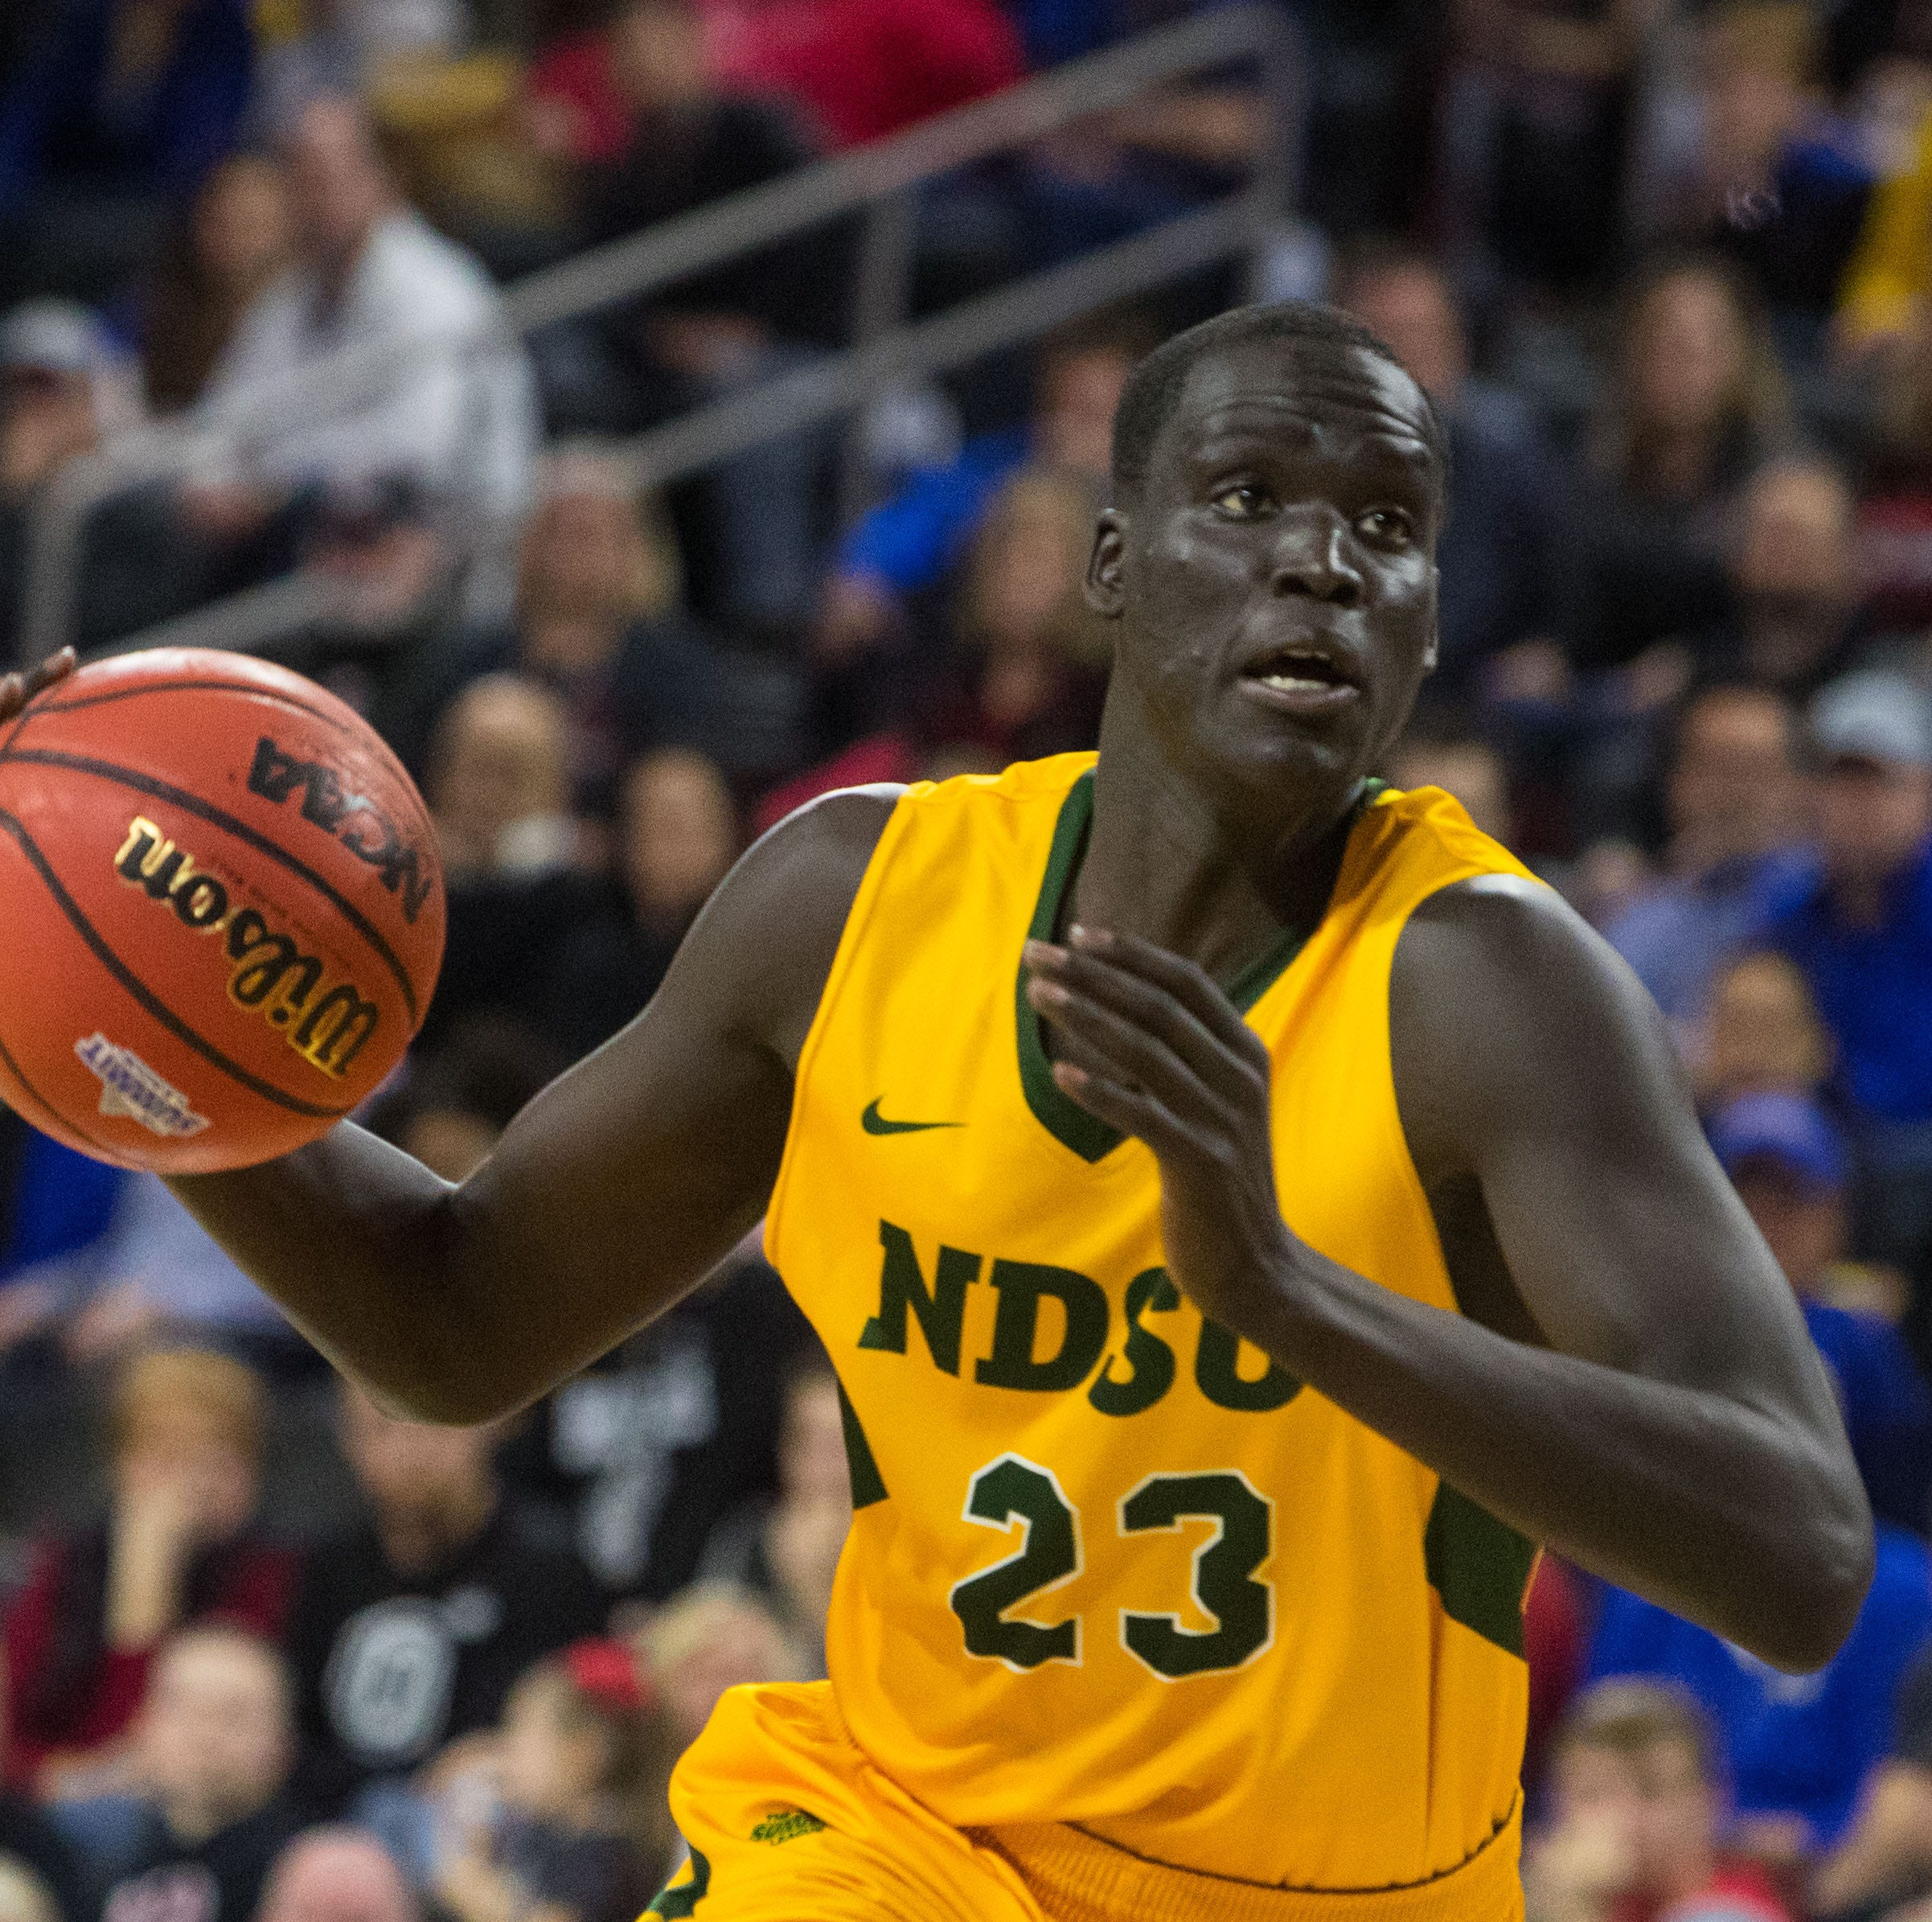 Washington grad Deng Geu transferring to North Texas Mean Green